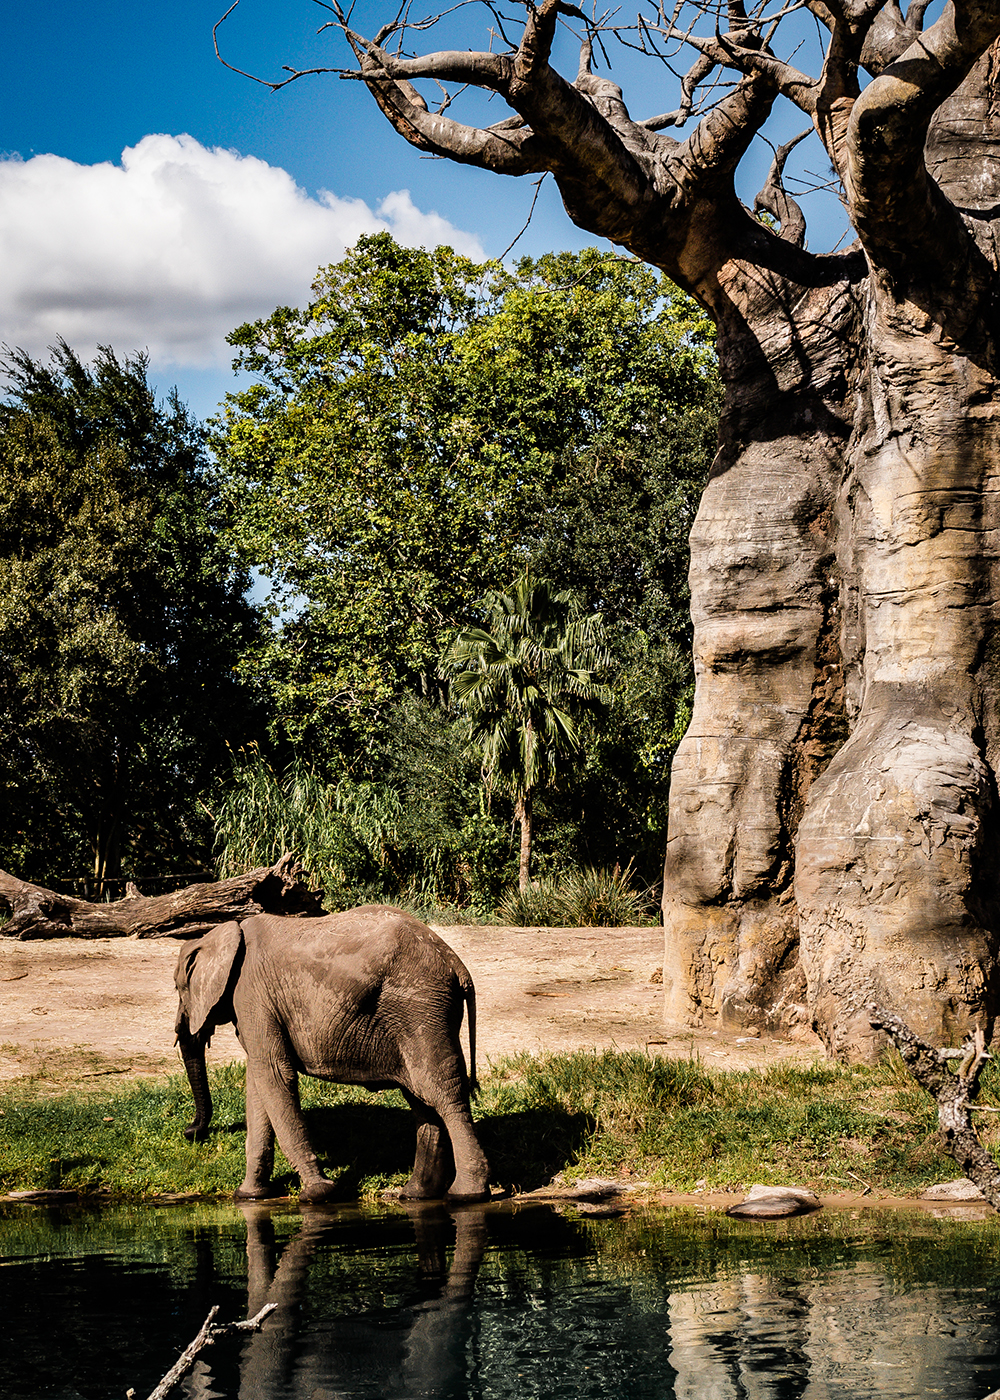 elephant-lightroom-hdr-resized HDR in Lightroom - How to Get the HDR Look You Want Uncategorized